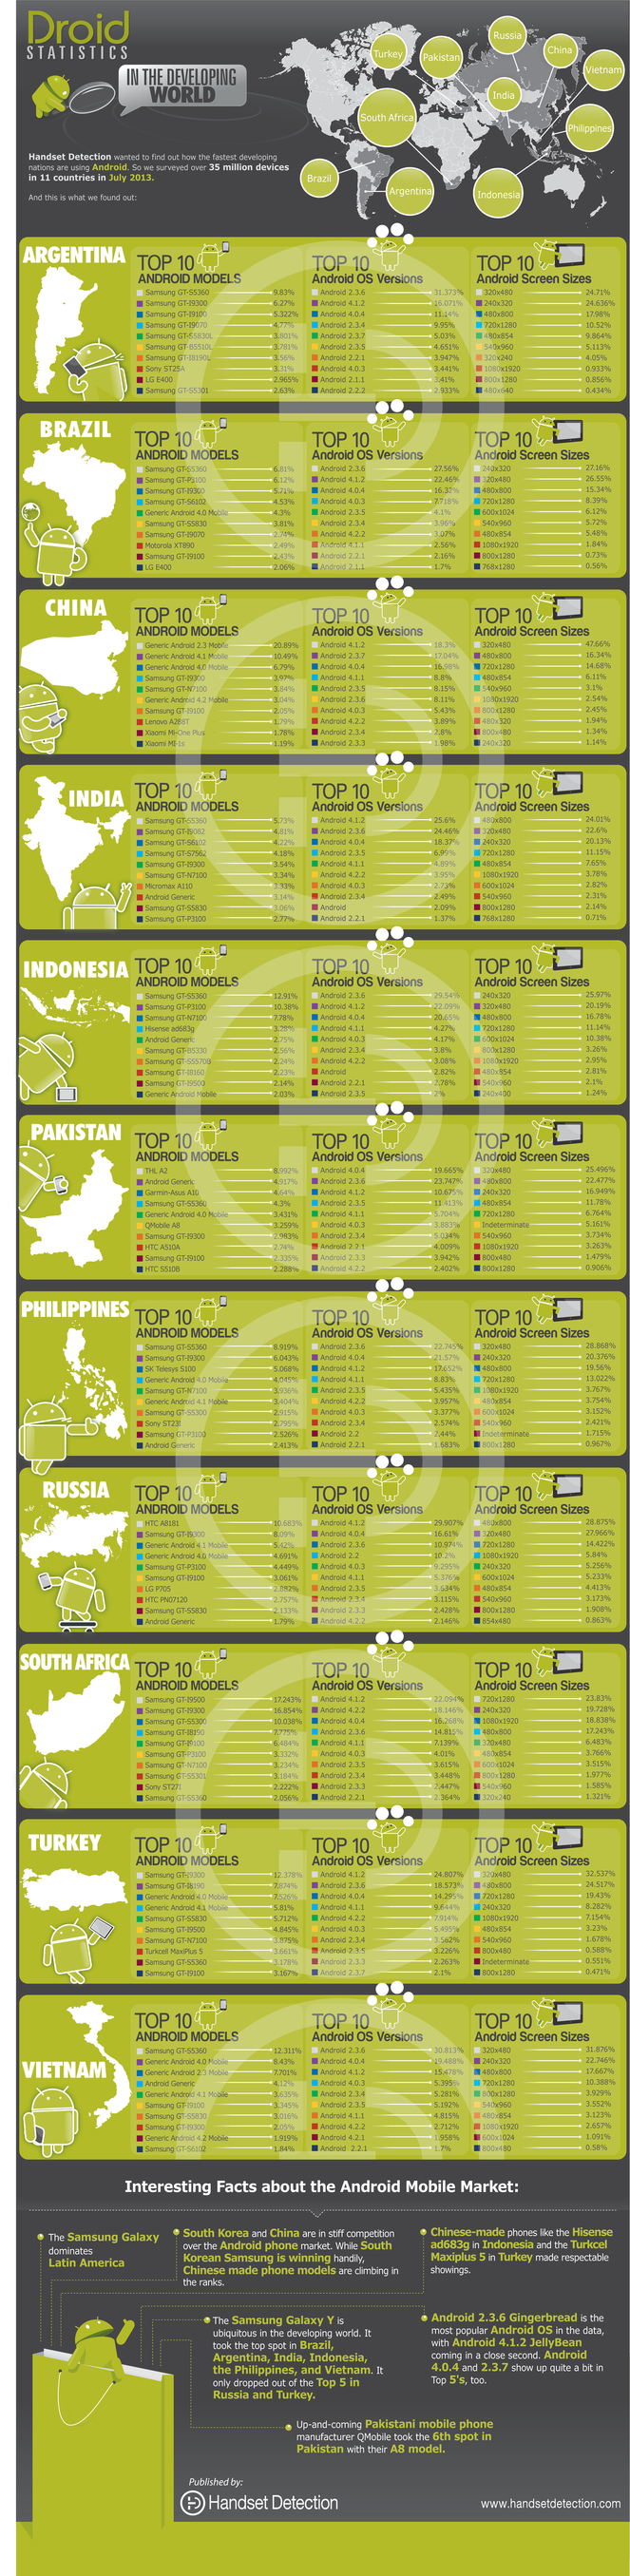 Android Developing World Infographic